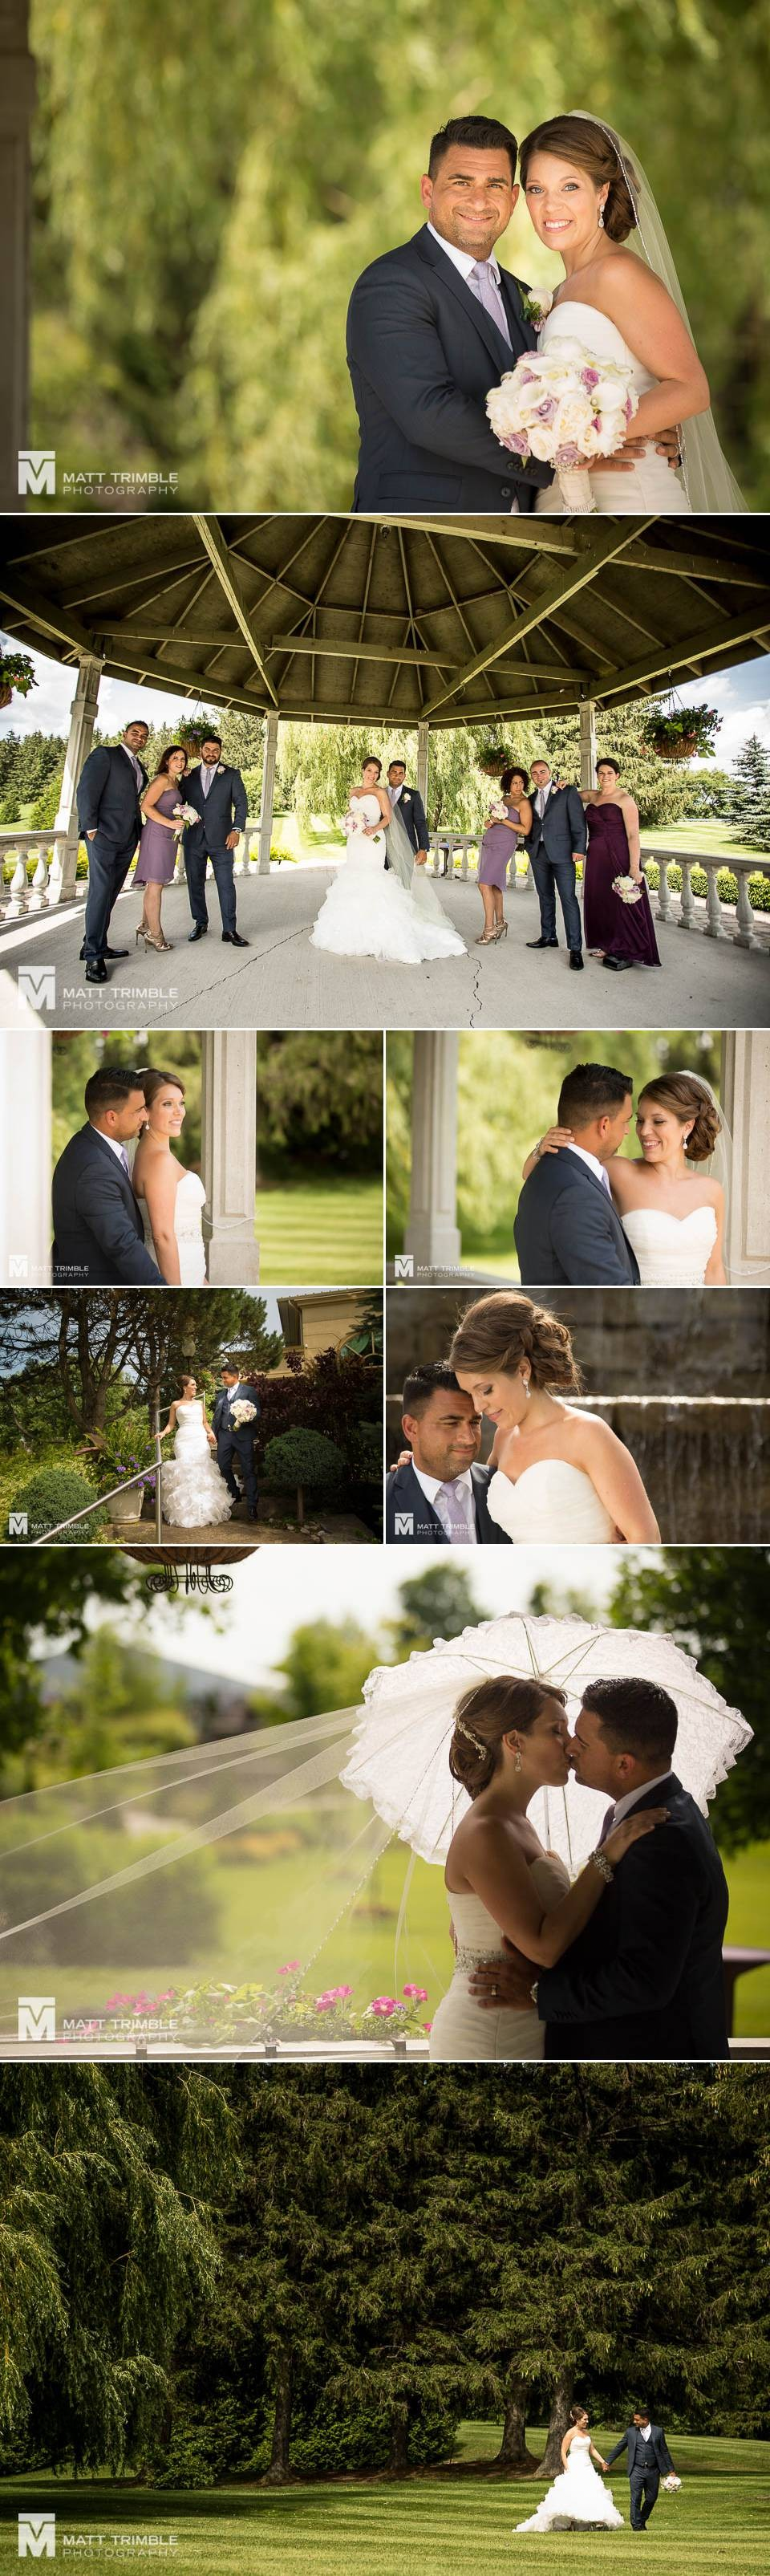 wedding photography at the royal ambassador